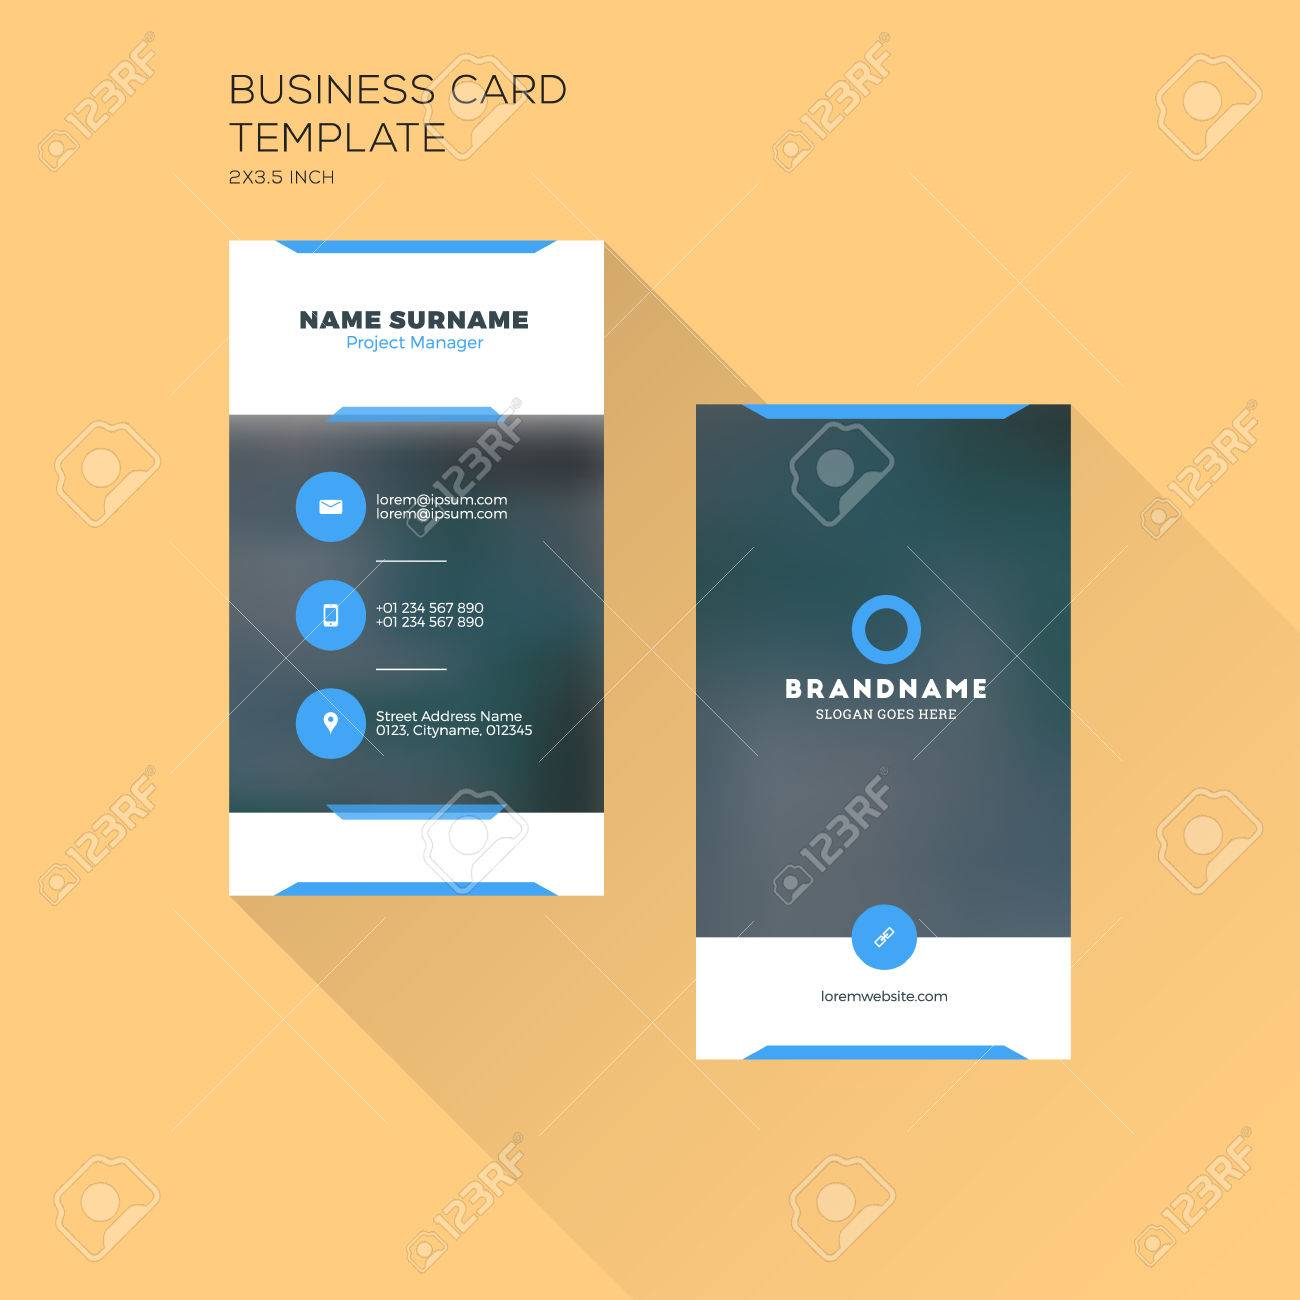 Vertical business card print template personal business card vector vertical business card print template personal business card with company black and blue colors clean flat design illustration cheaphphosting Image collections